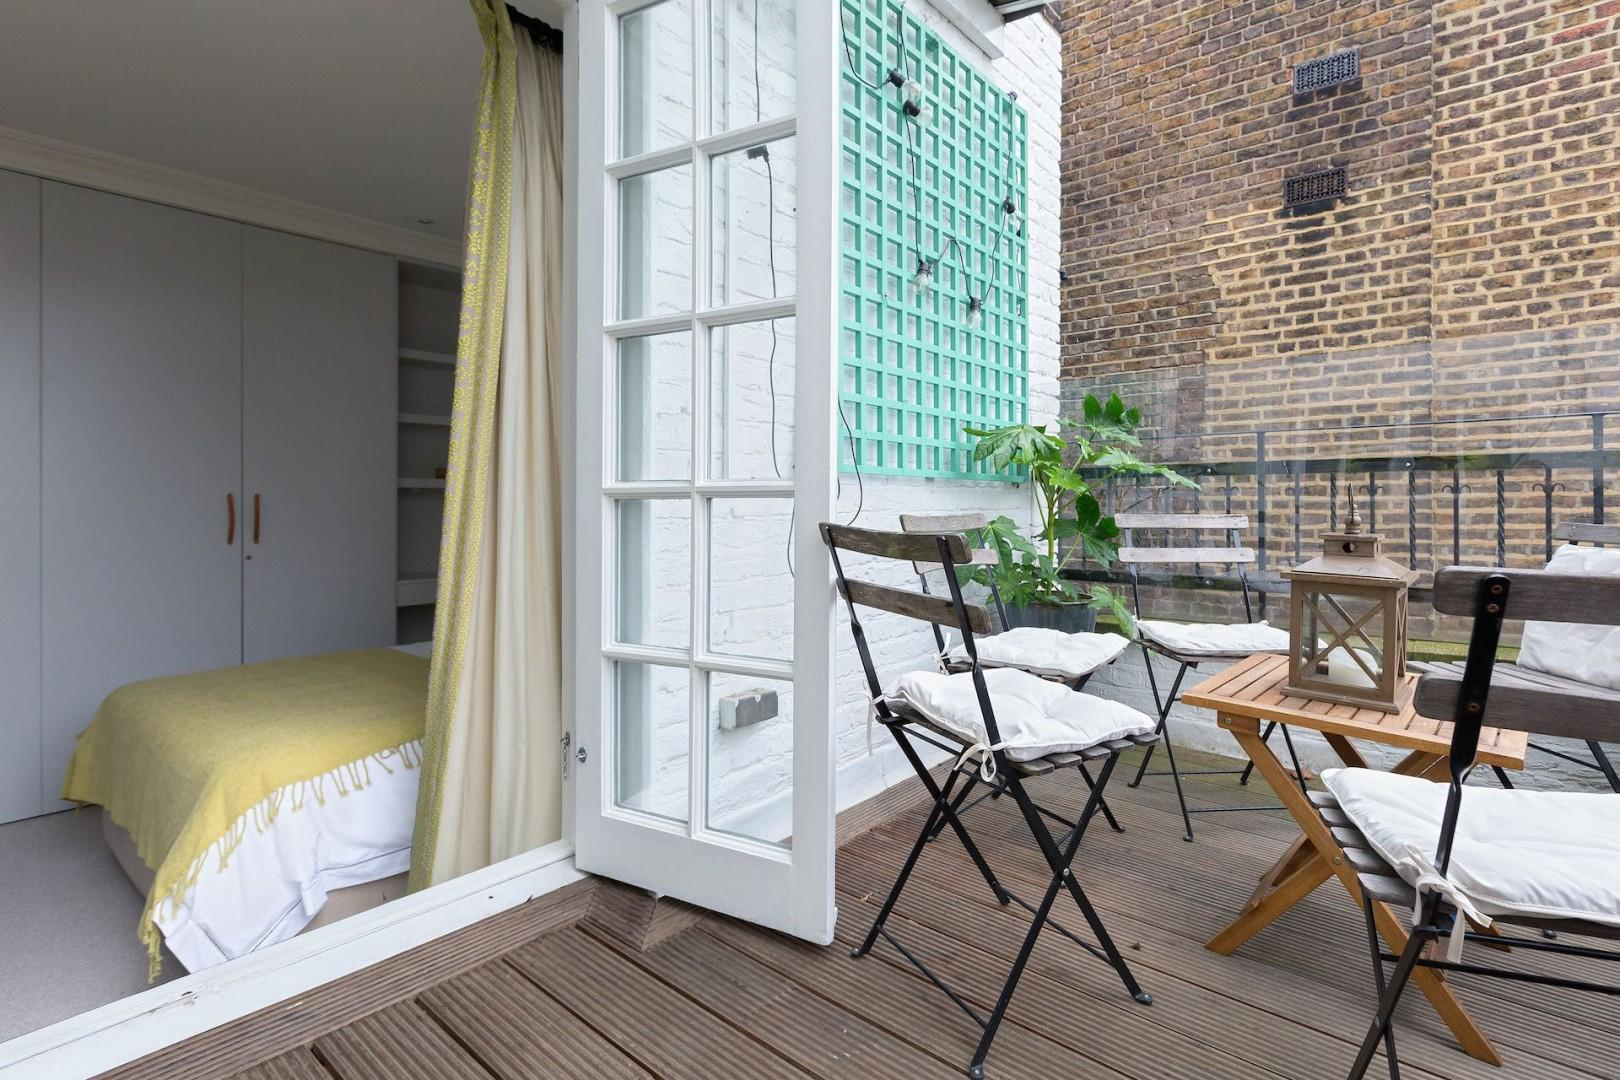 Wrap around balcony connects to the second bedroom